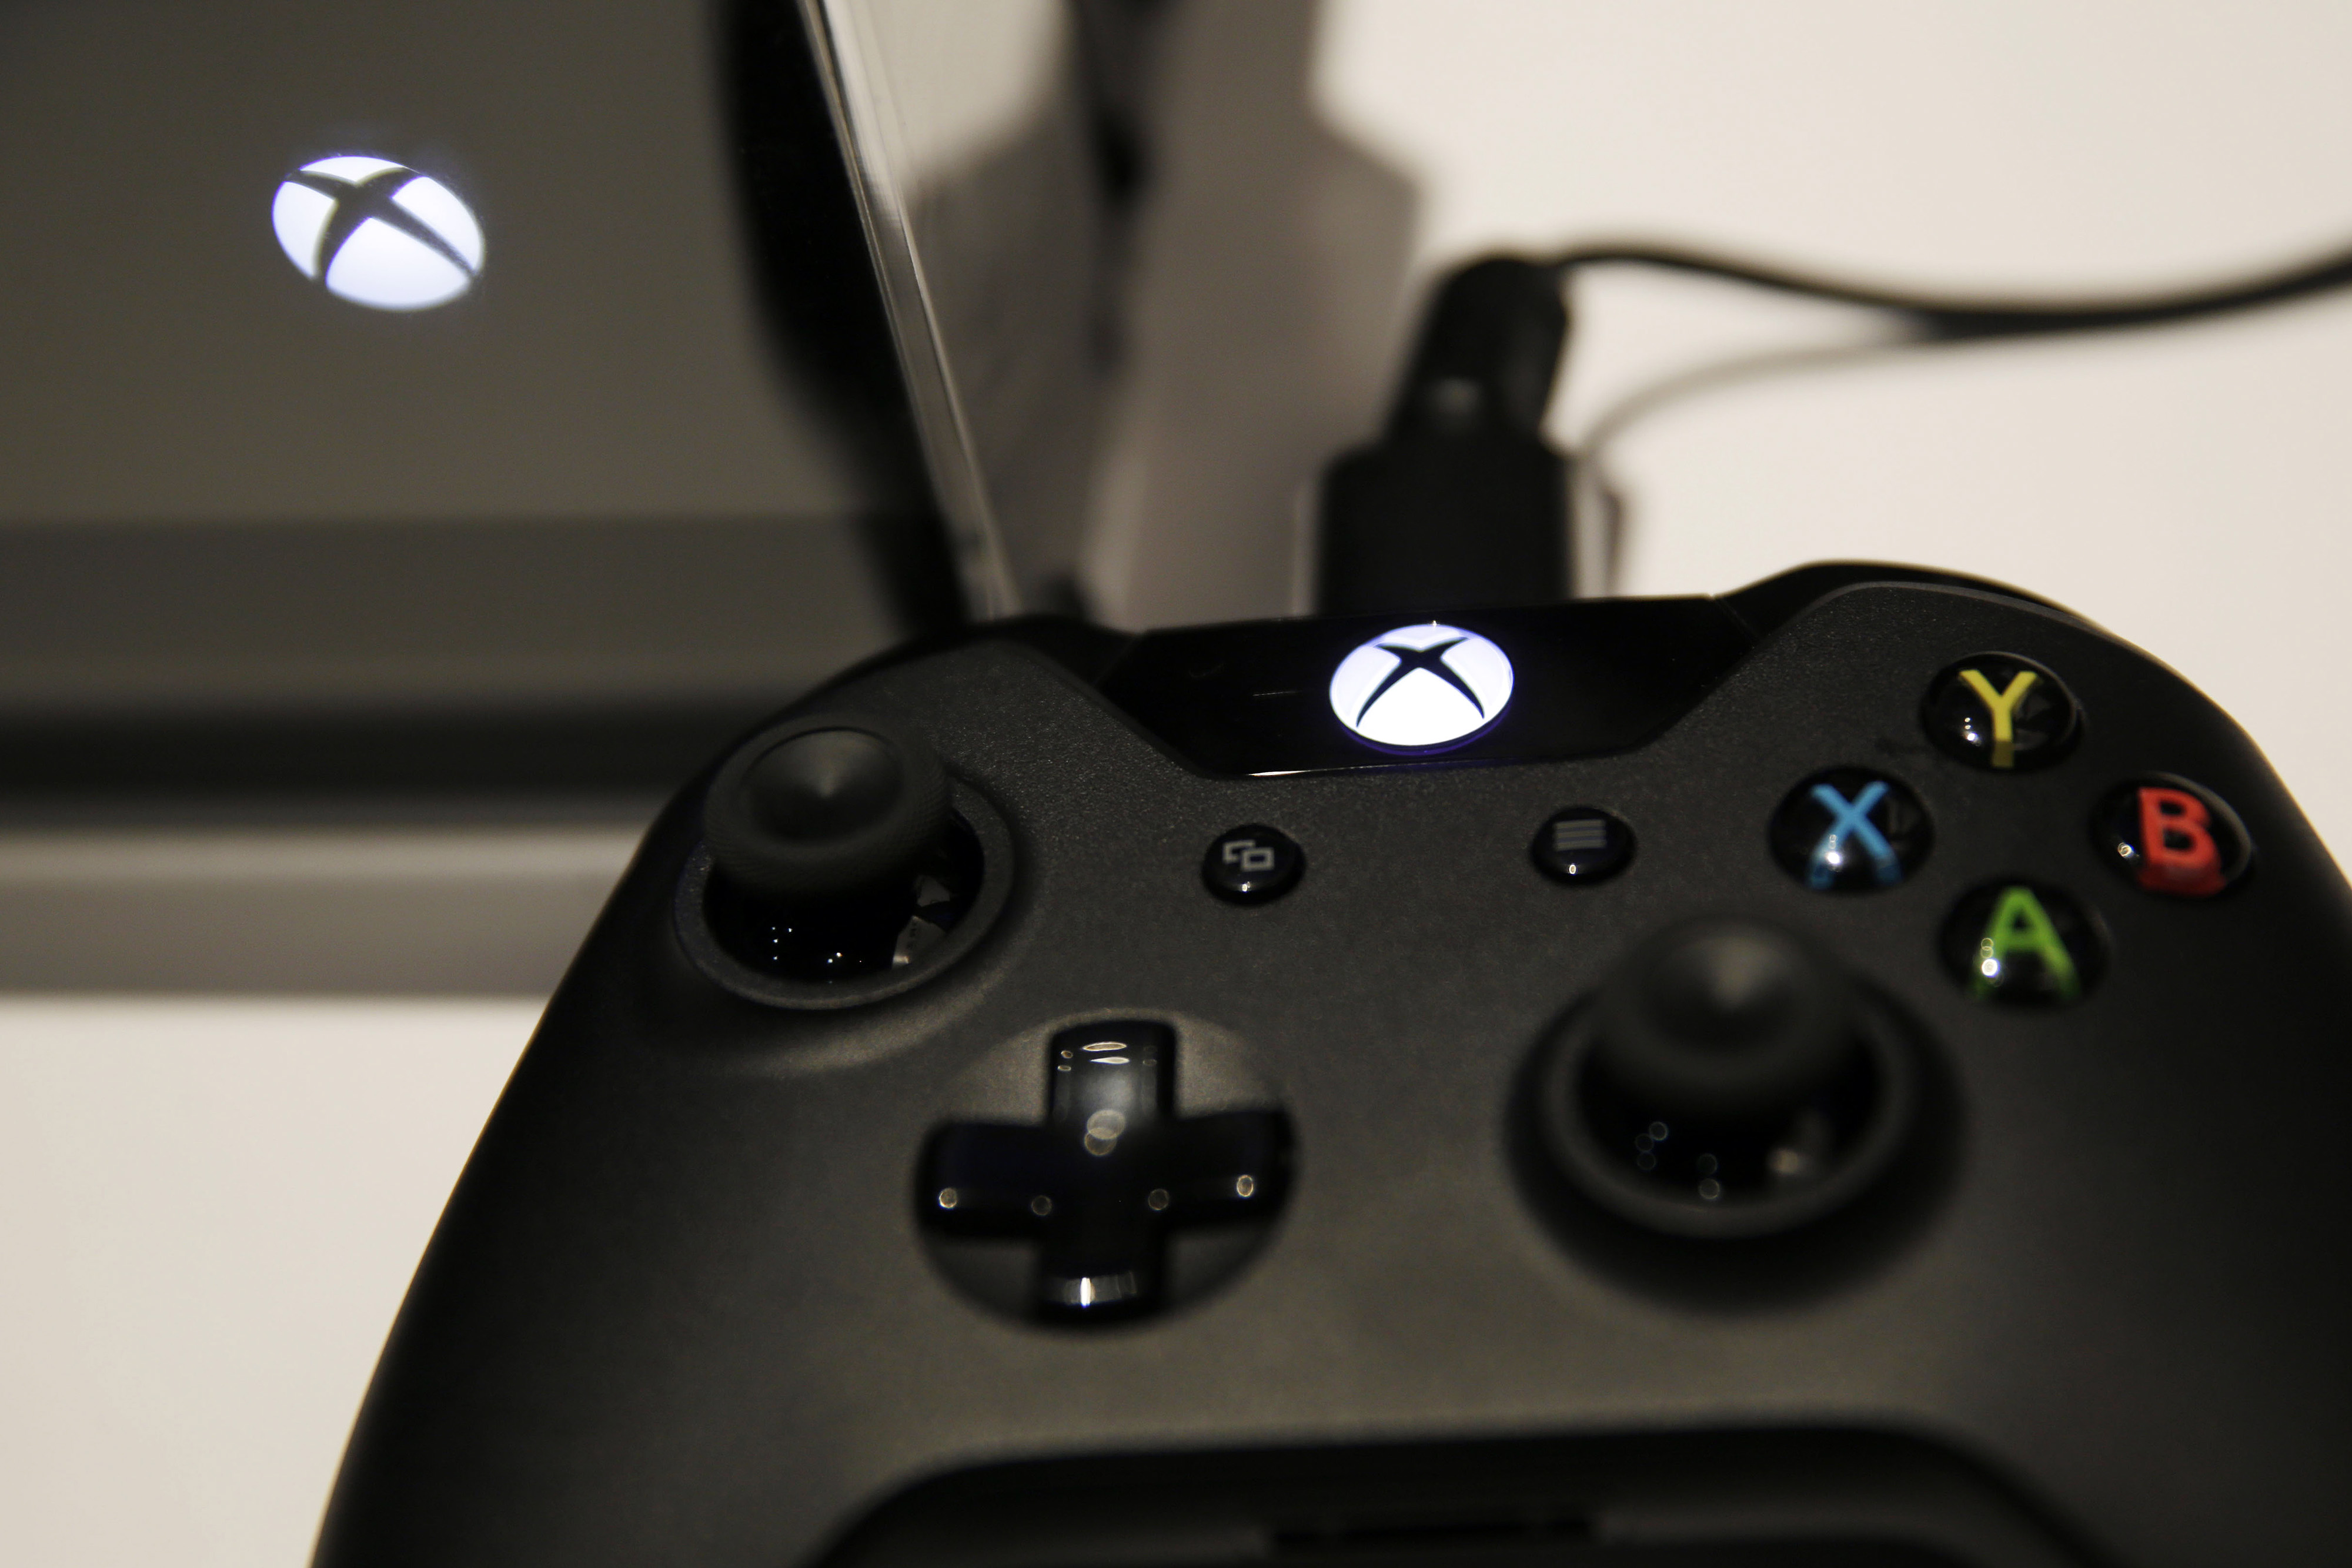 A logo sits on an Xbox One games controller during the Eurogamer Expo 2013 in London, U.K., on Saturday, Sept. 28, 2013.